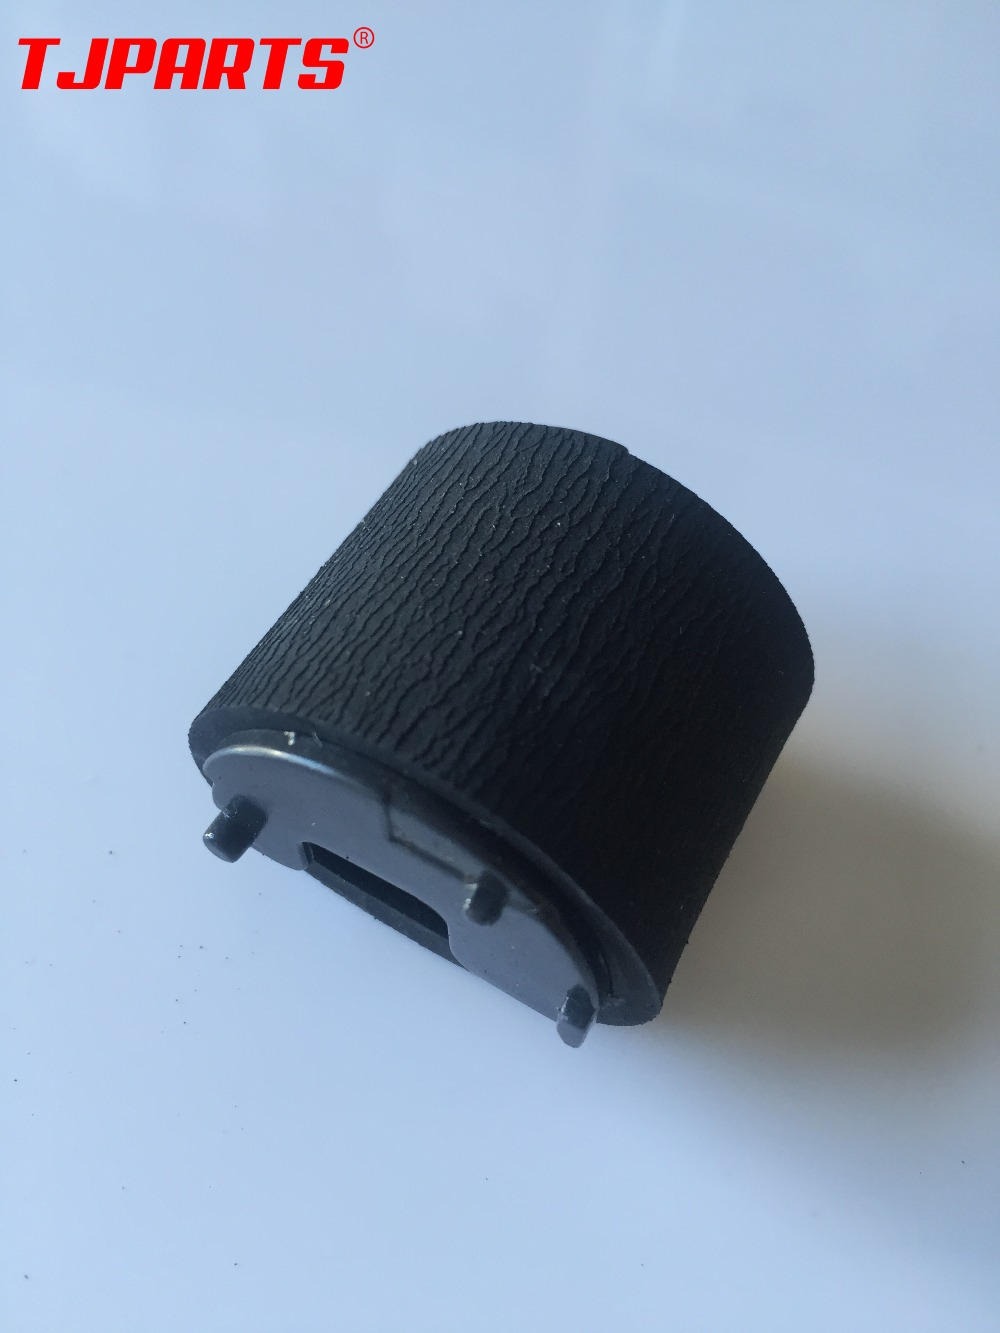 Compatible NEW for HP P3015 P3015D P3015DN P3015X Pickup Roller RL1-2412-000 RL1-2412Compatible NEW for HP P3015 P3015D P3015DN P3015X Pickup Roller RL1-2412-000 RL1-2412